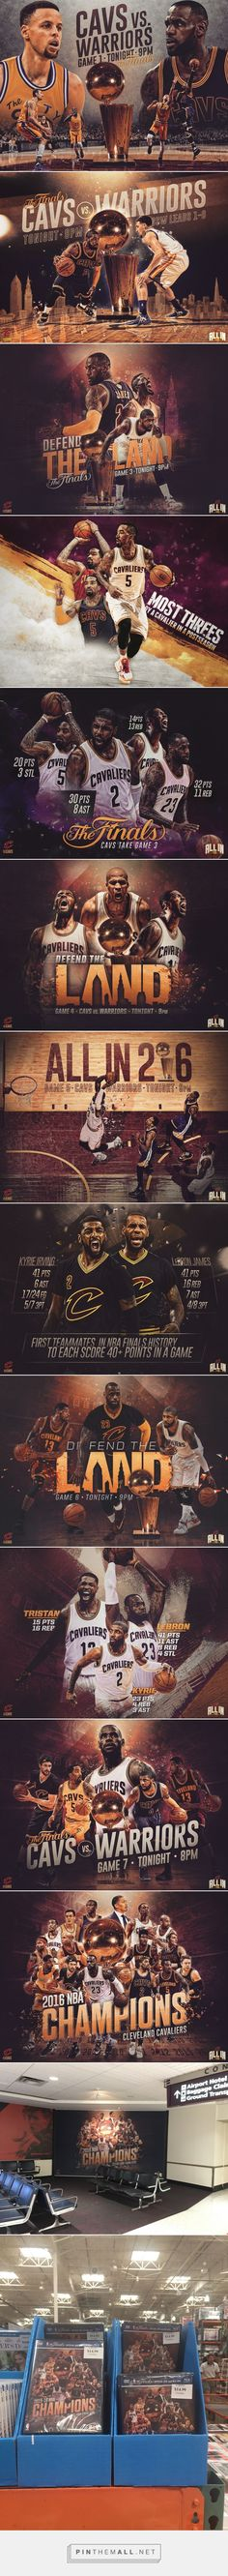 2016 Cleveland Cavaliers NBA Finals Graphics Package on Behance - created via https://pinthemall.net